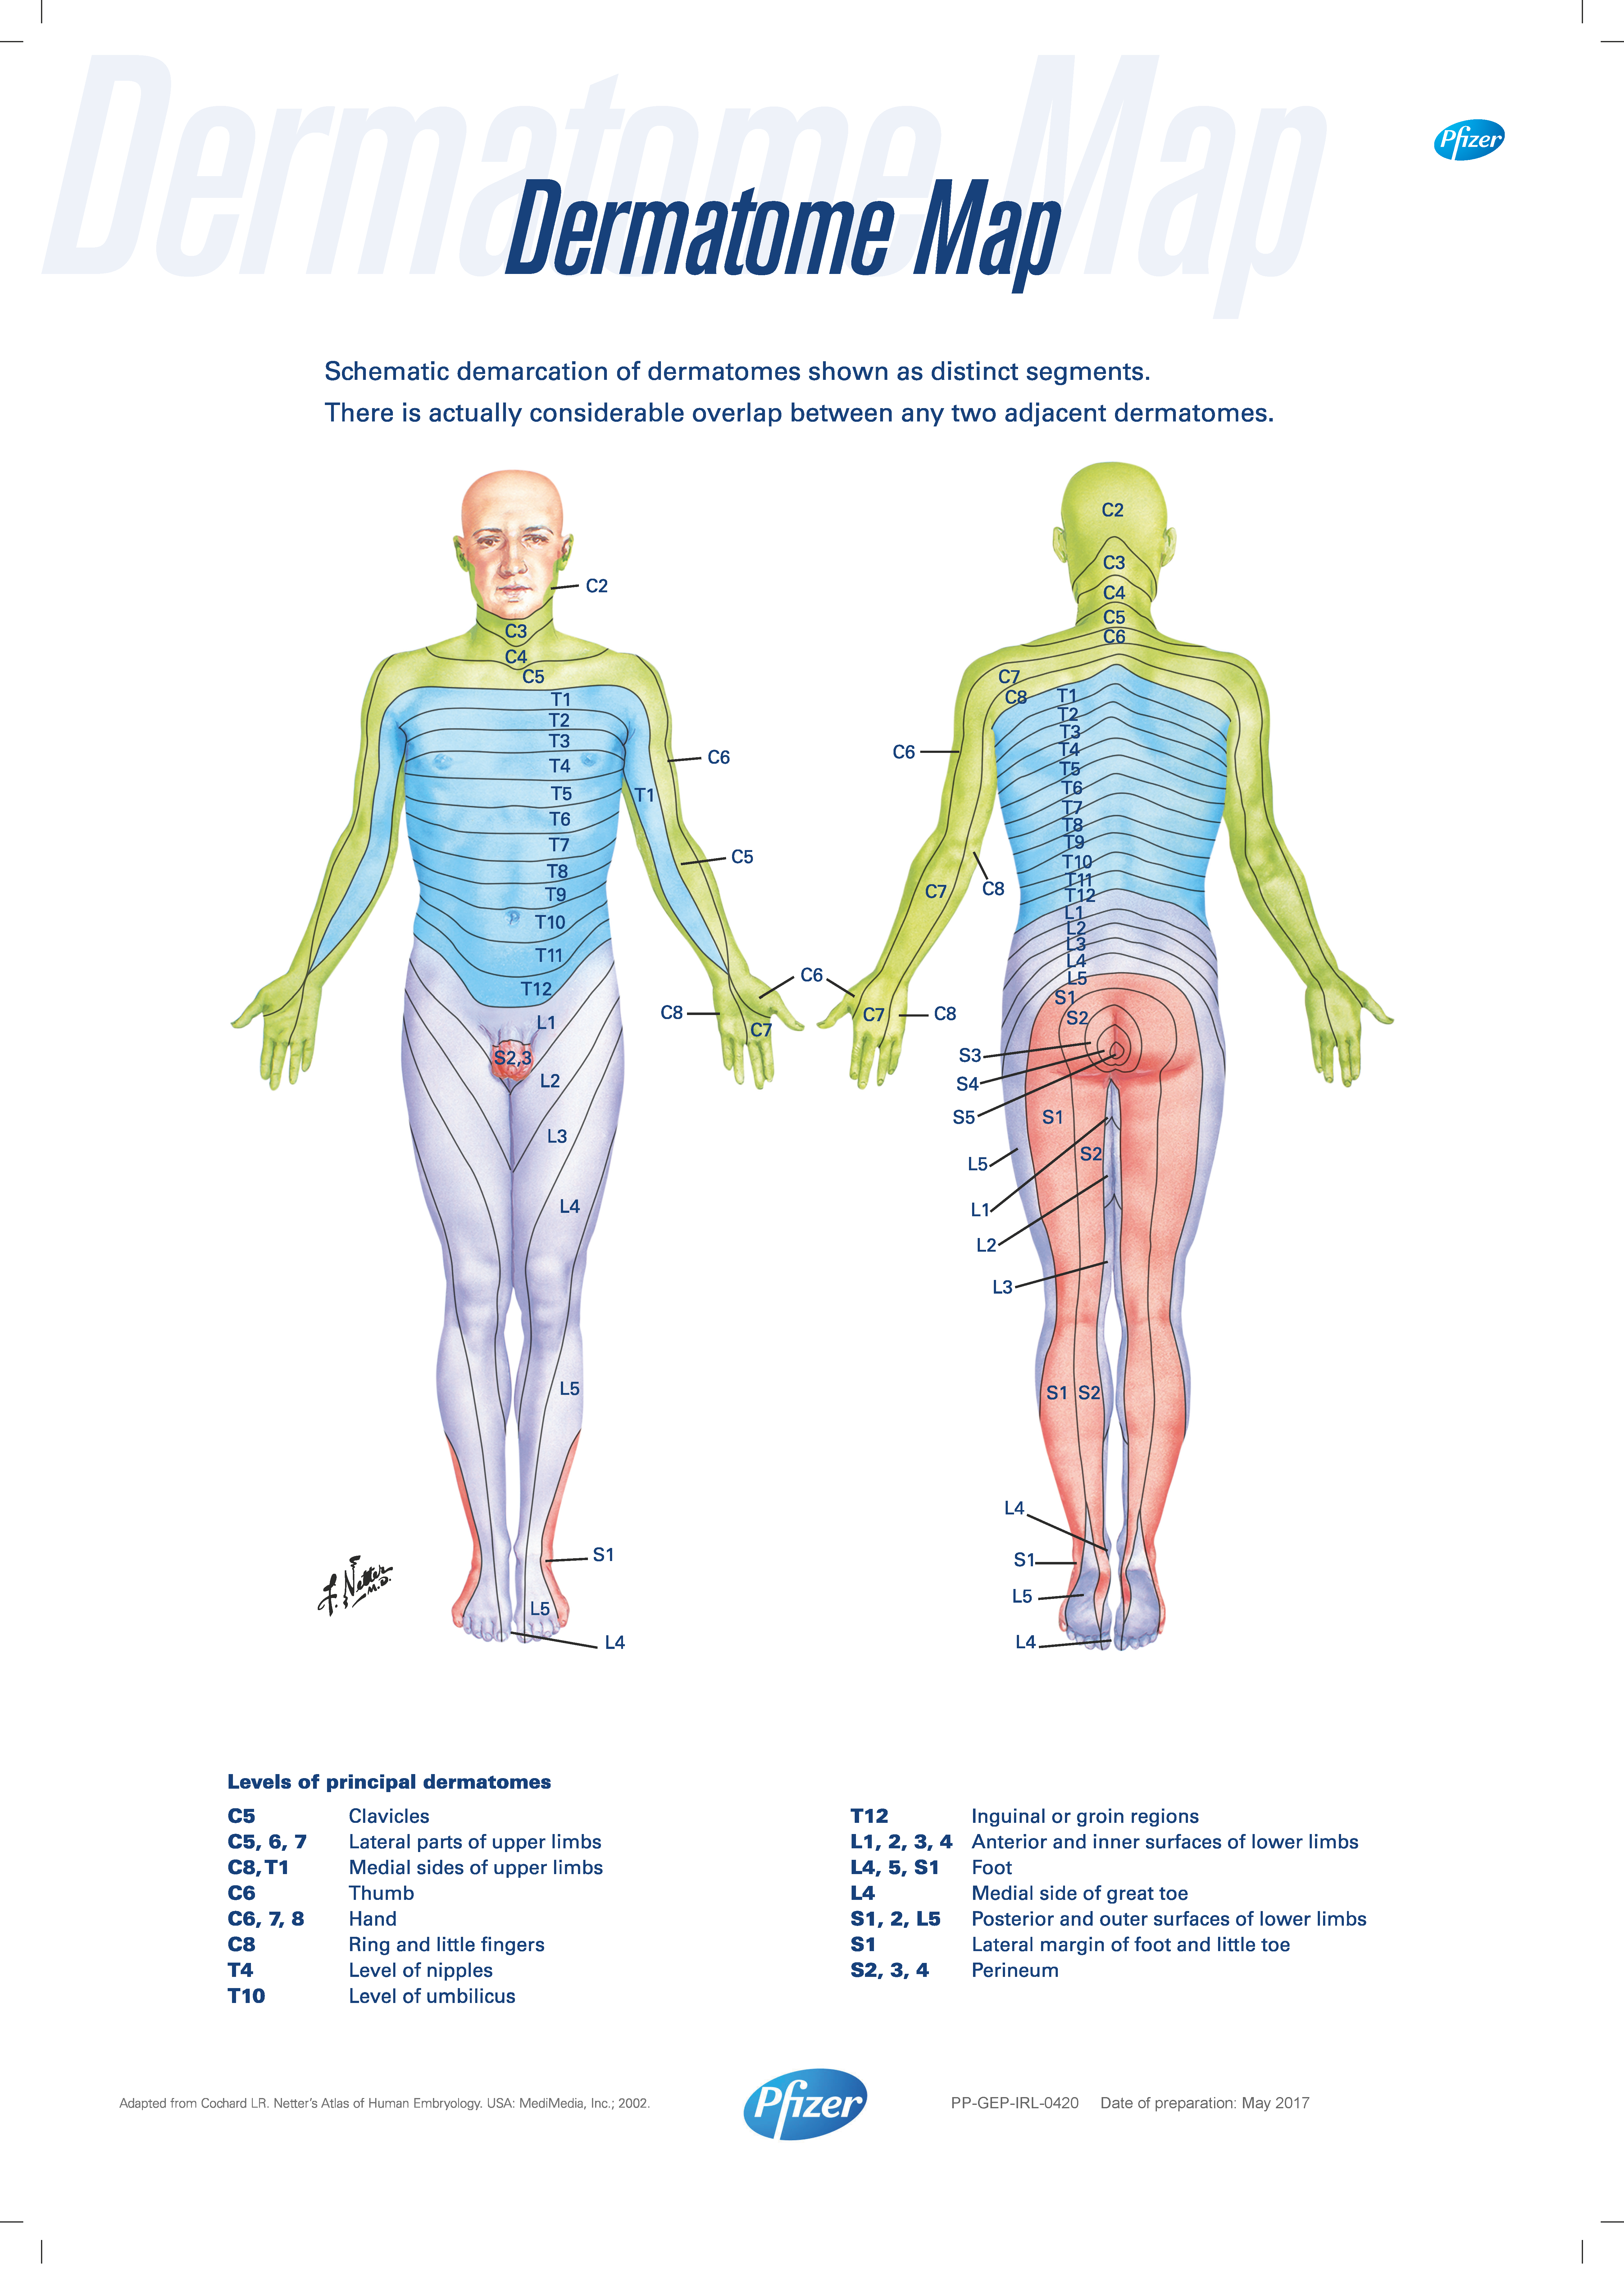 Dermatome Map | Pfizer for Professionals on